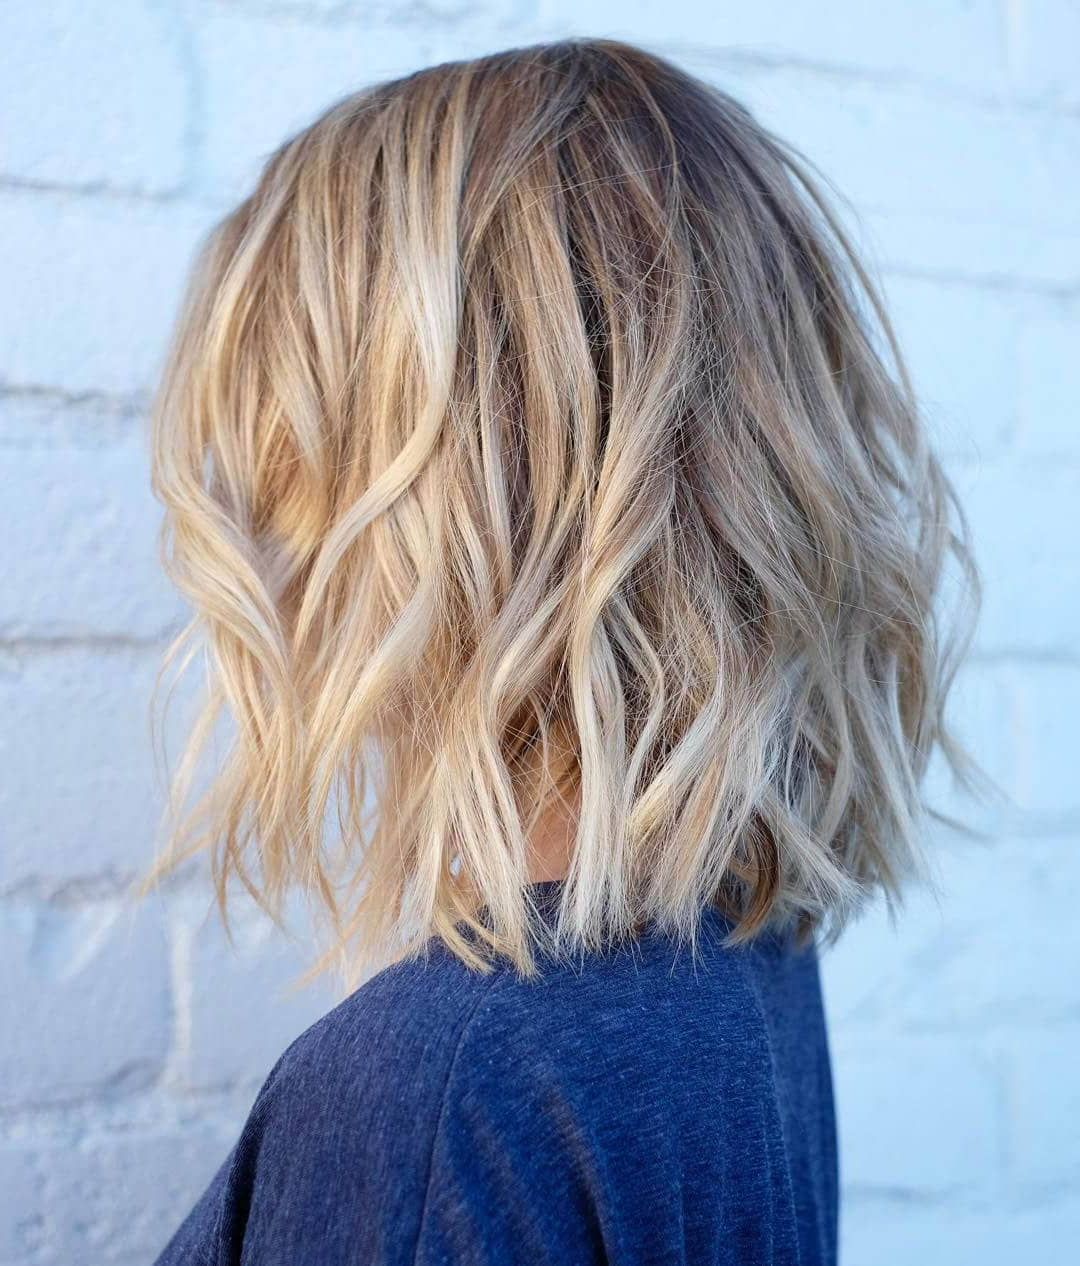 50 Fresh Short Blonde Hair Ideas To Update Your Style In 2019 Within Short Warm Blonde Shag Haircuts (View 10 of 20)